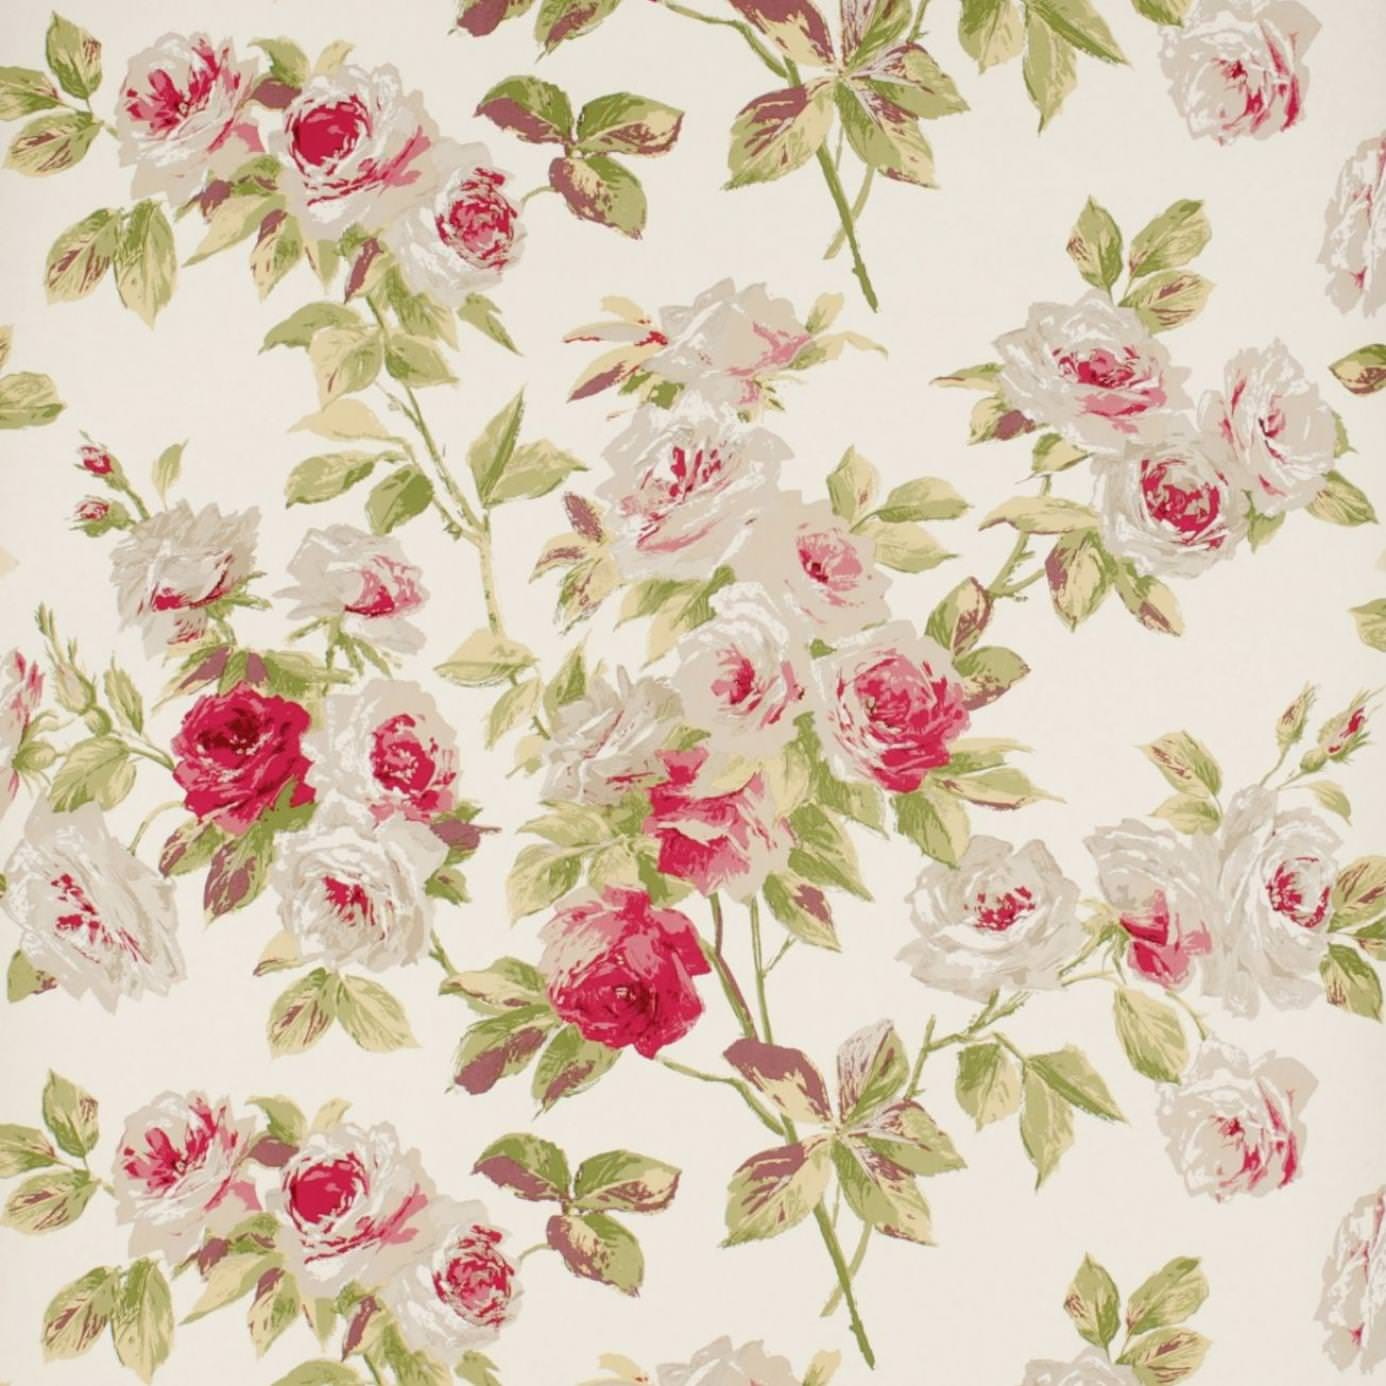 Download 15 free floral vintage wallpapers - Papeles pintados vintage ...